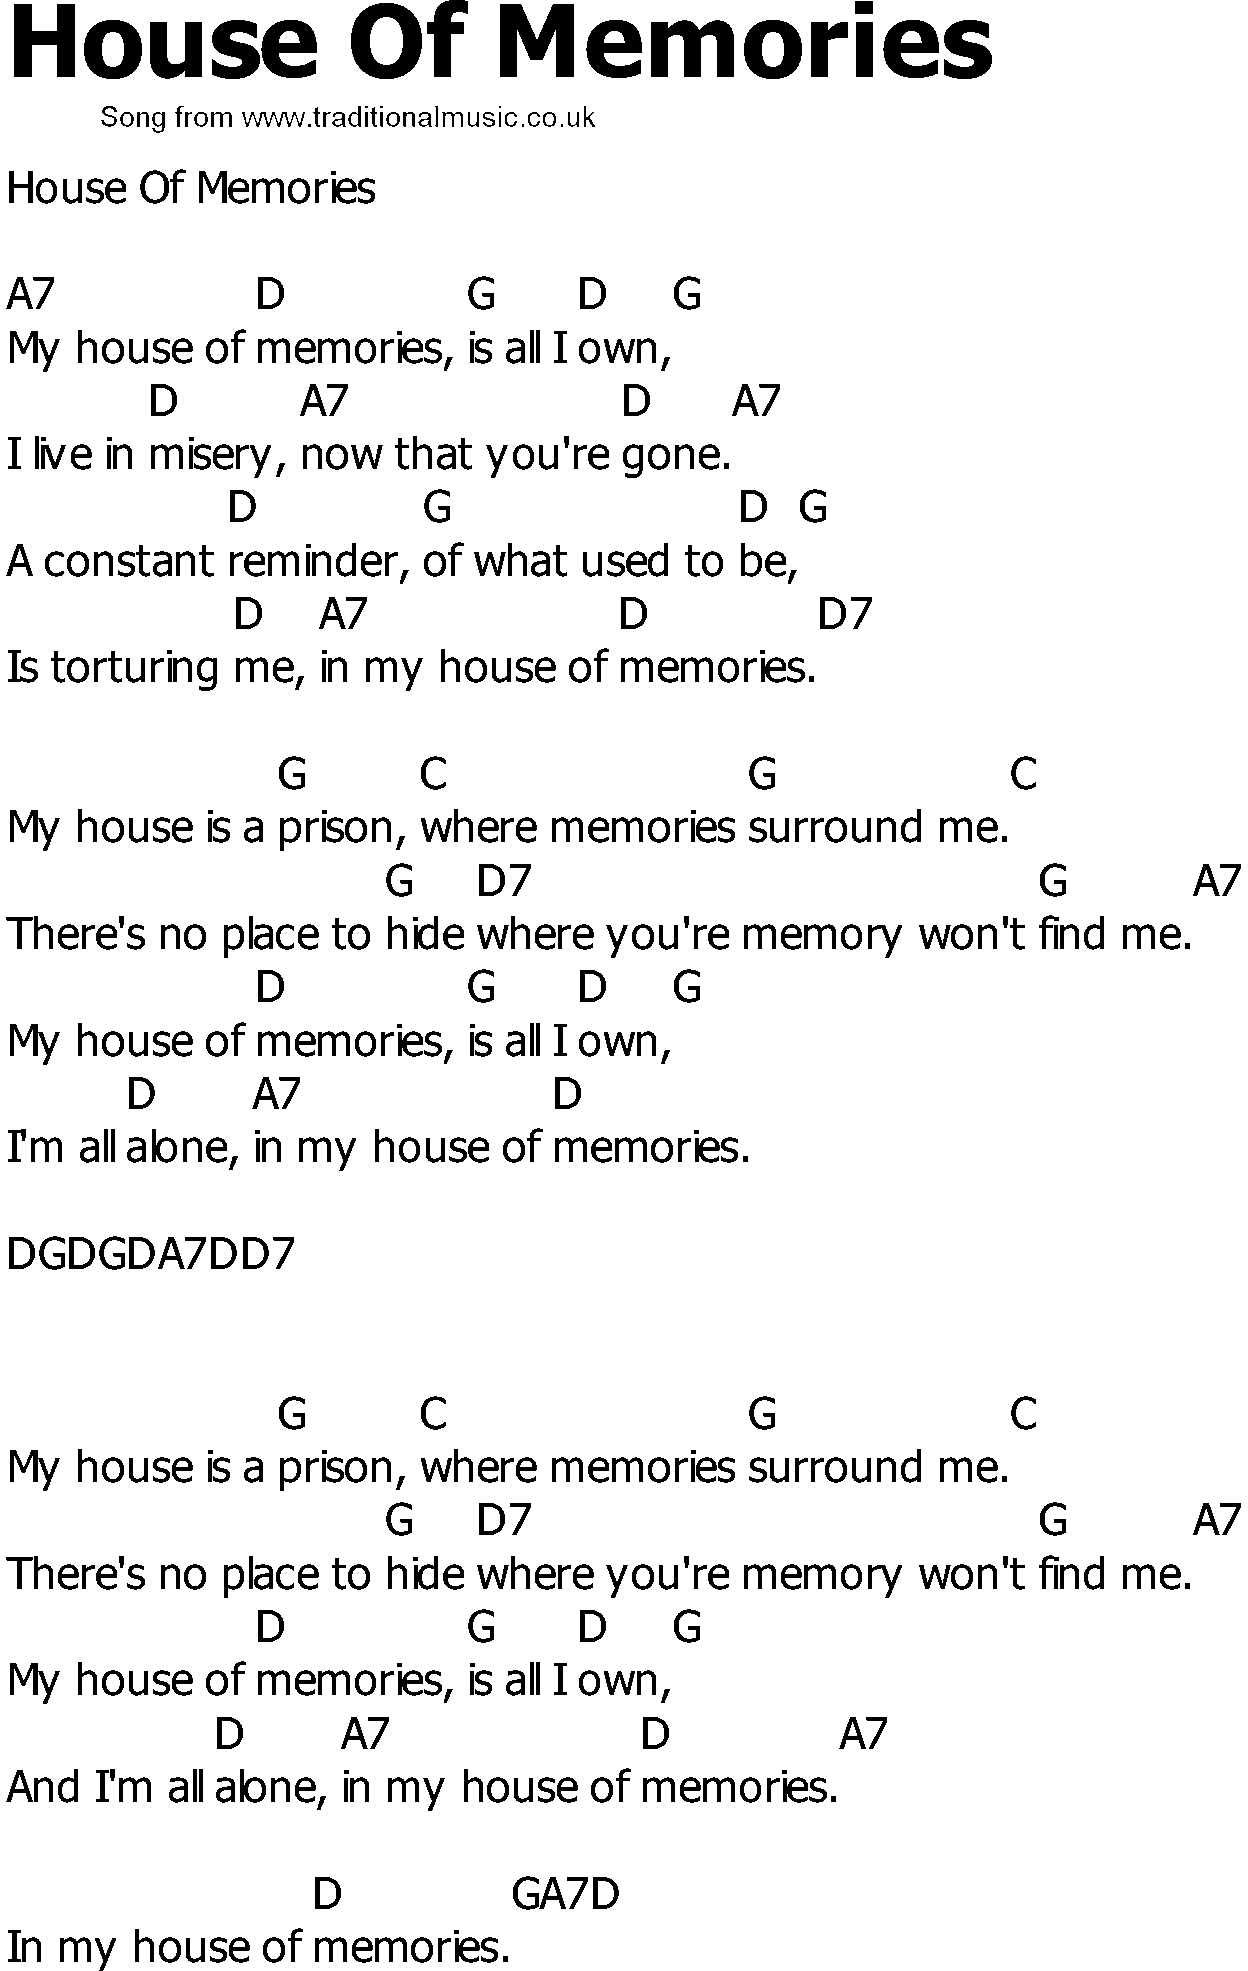 Old country song lyrics with chords house of memories for Classic house chords